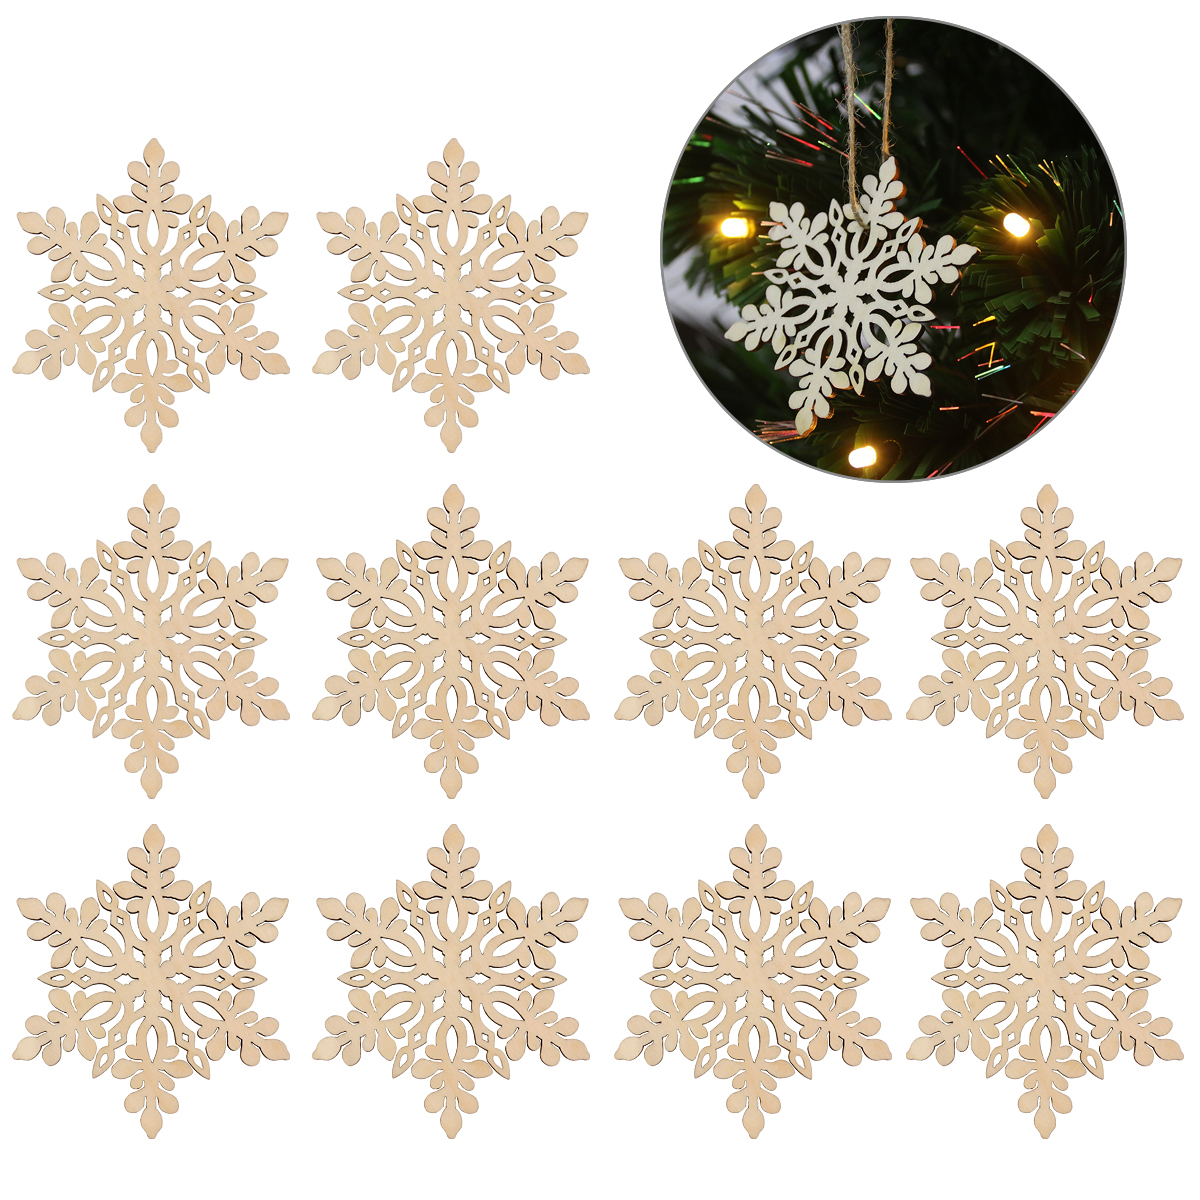 10pcs Sharp Hexagonal Wooden Snowflake Hanging Ornament Decoration Pendants With String Wood Color Party Diy Decorations Aliexpress